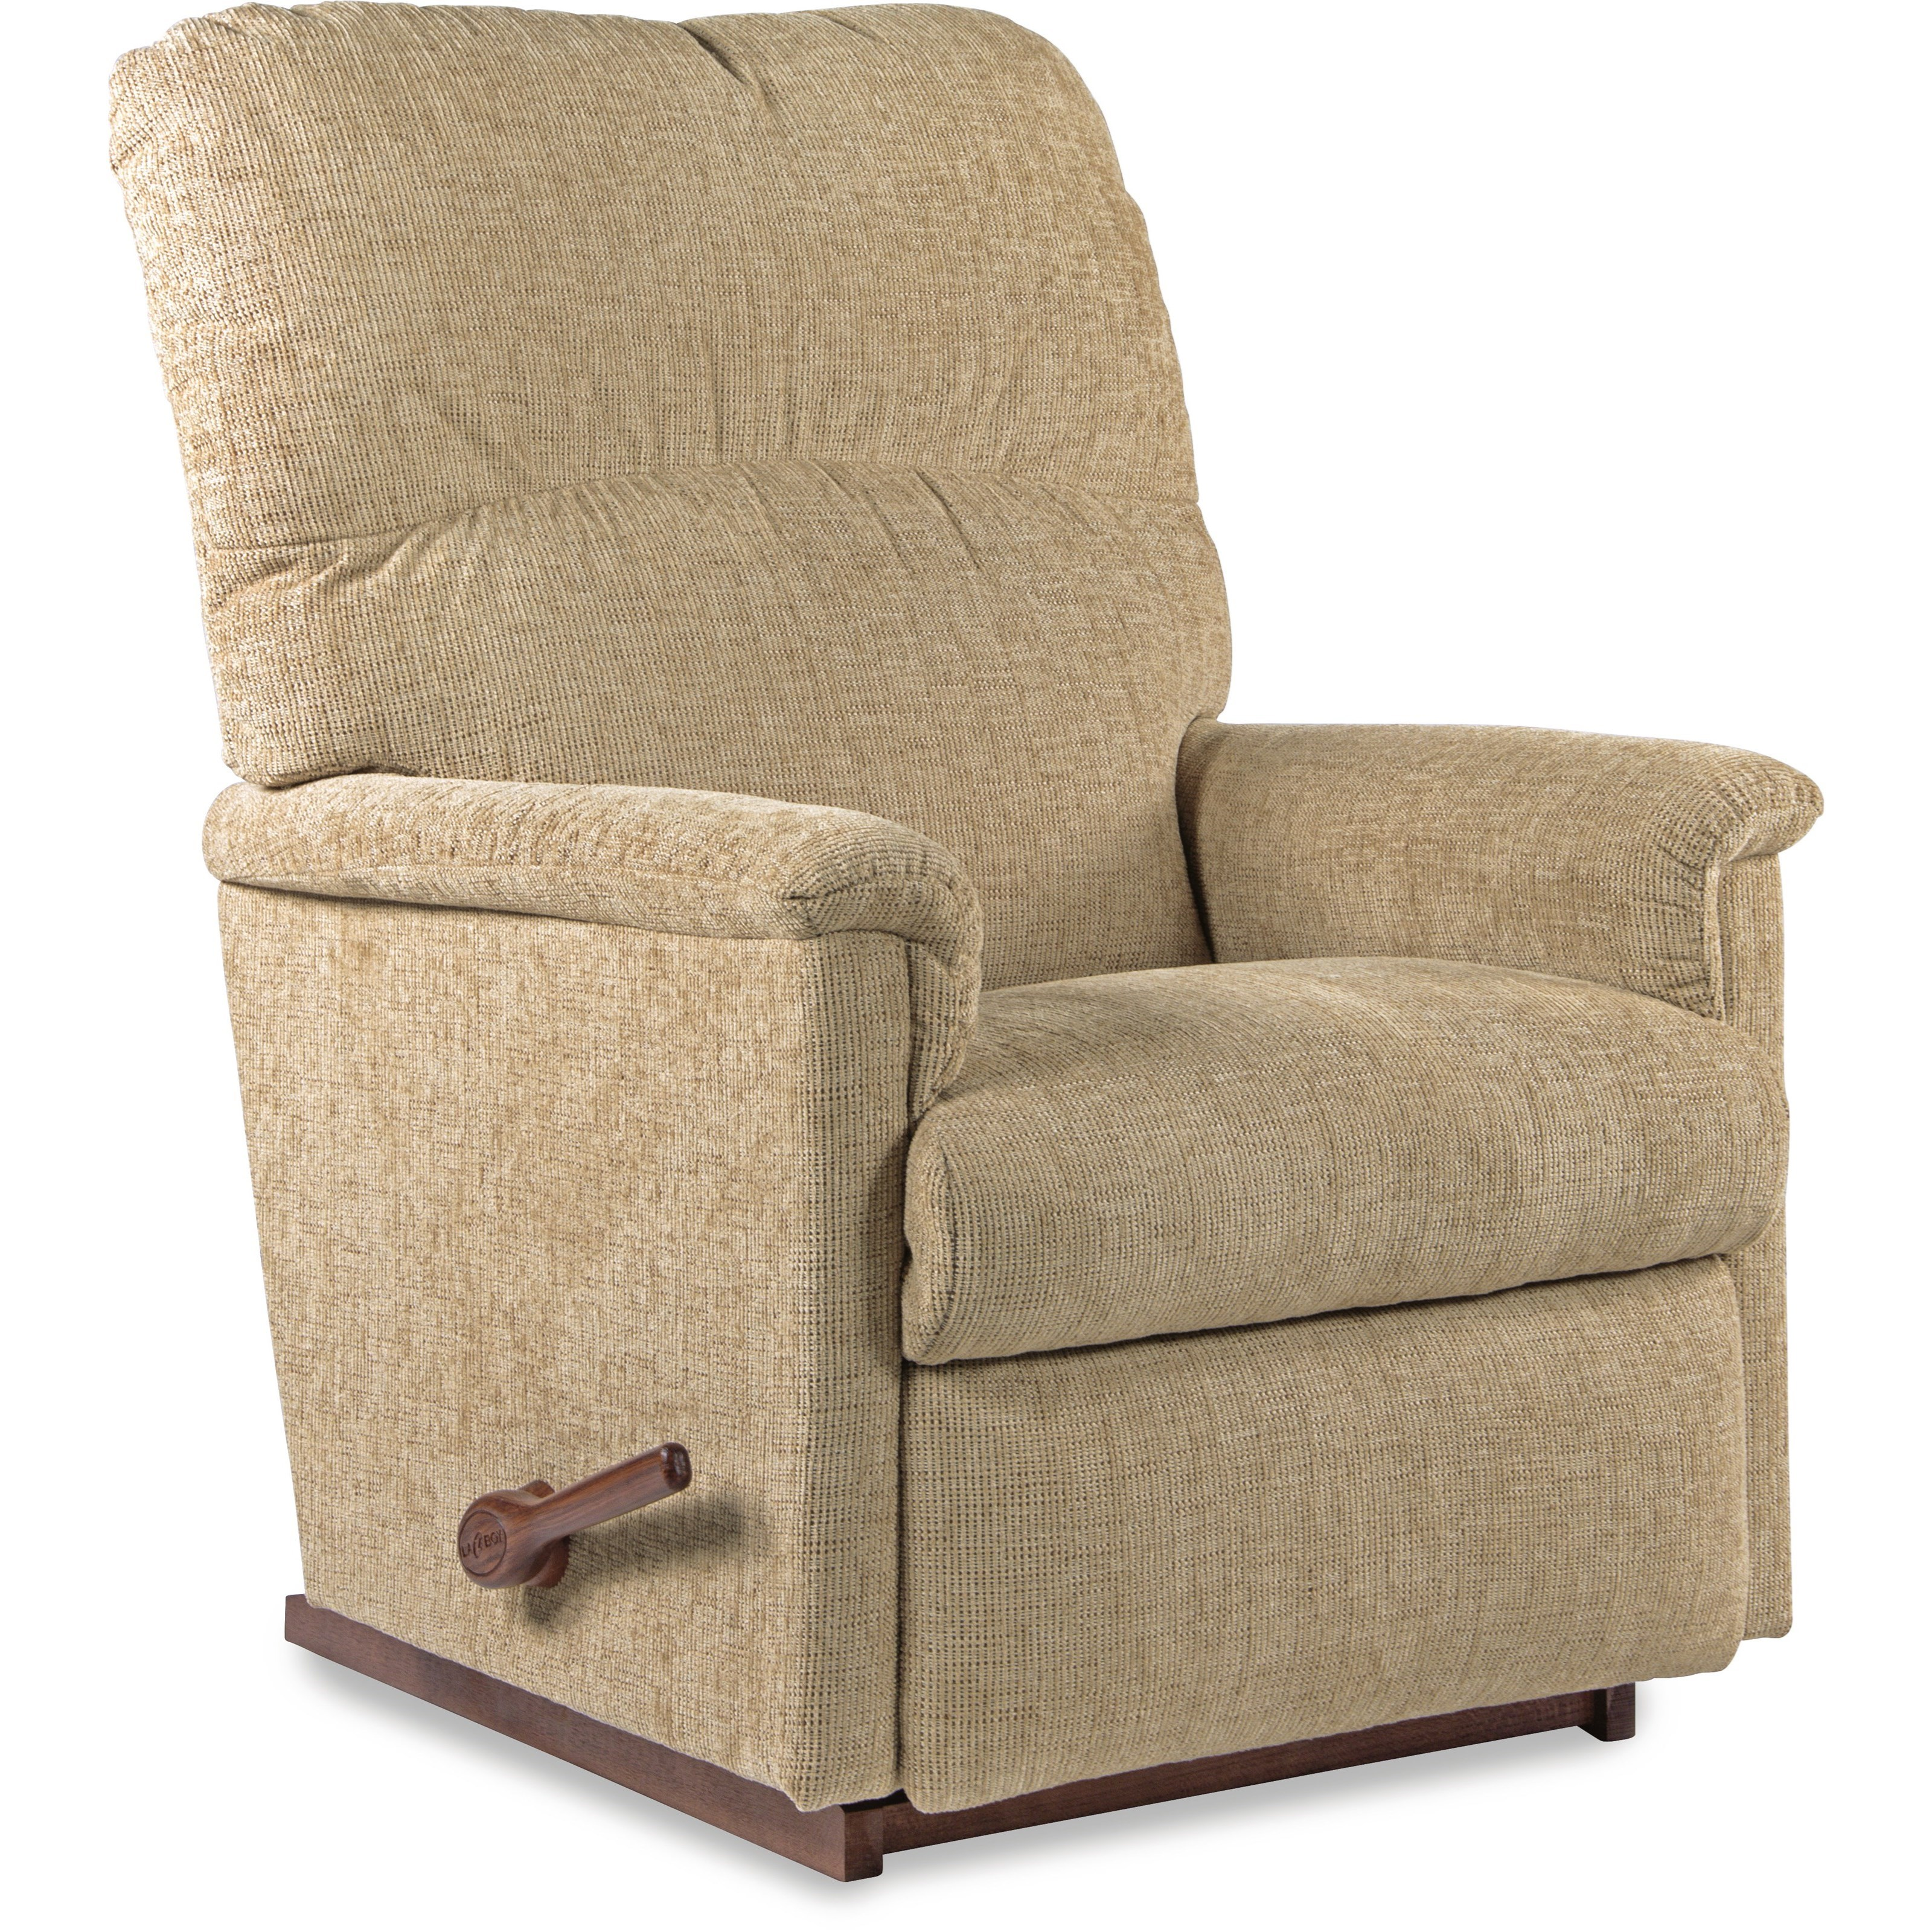 Recliners Collage RECLINA-ROCKERRecliner by La-Z-Boy at Fisher Home Furnishings